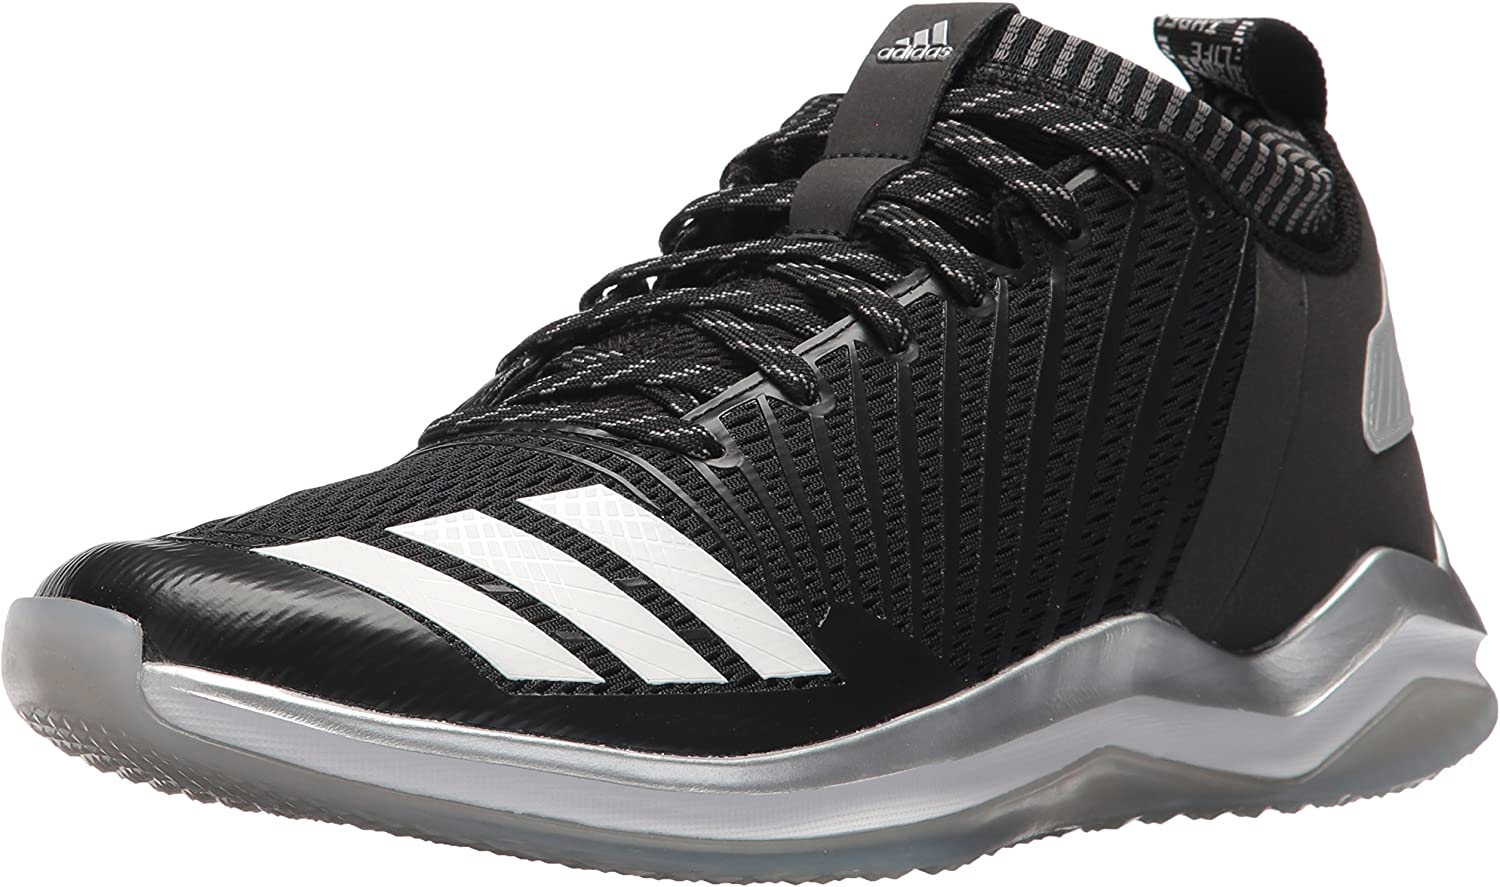 Adidas Men's Freak X Carbon Mid Baseball shoes, Black White Onix, 11 Medium US